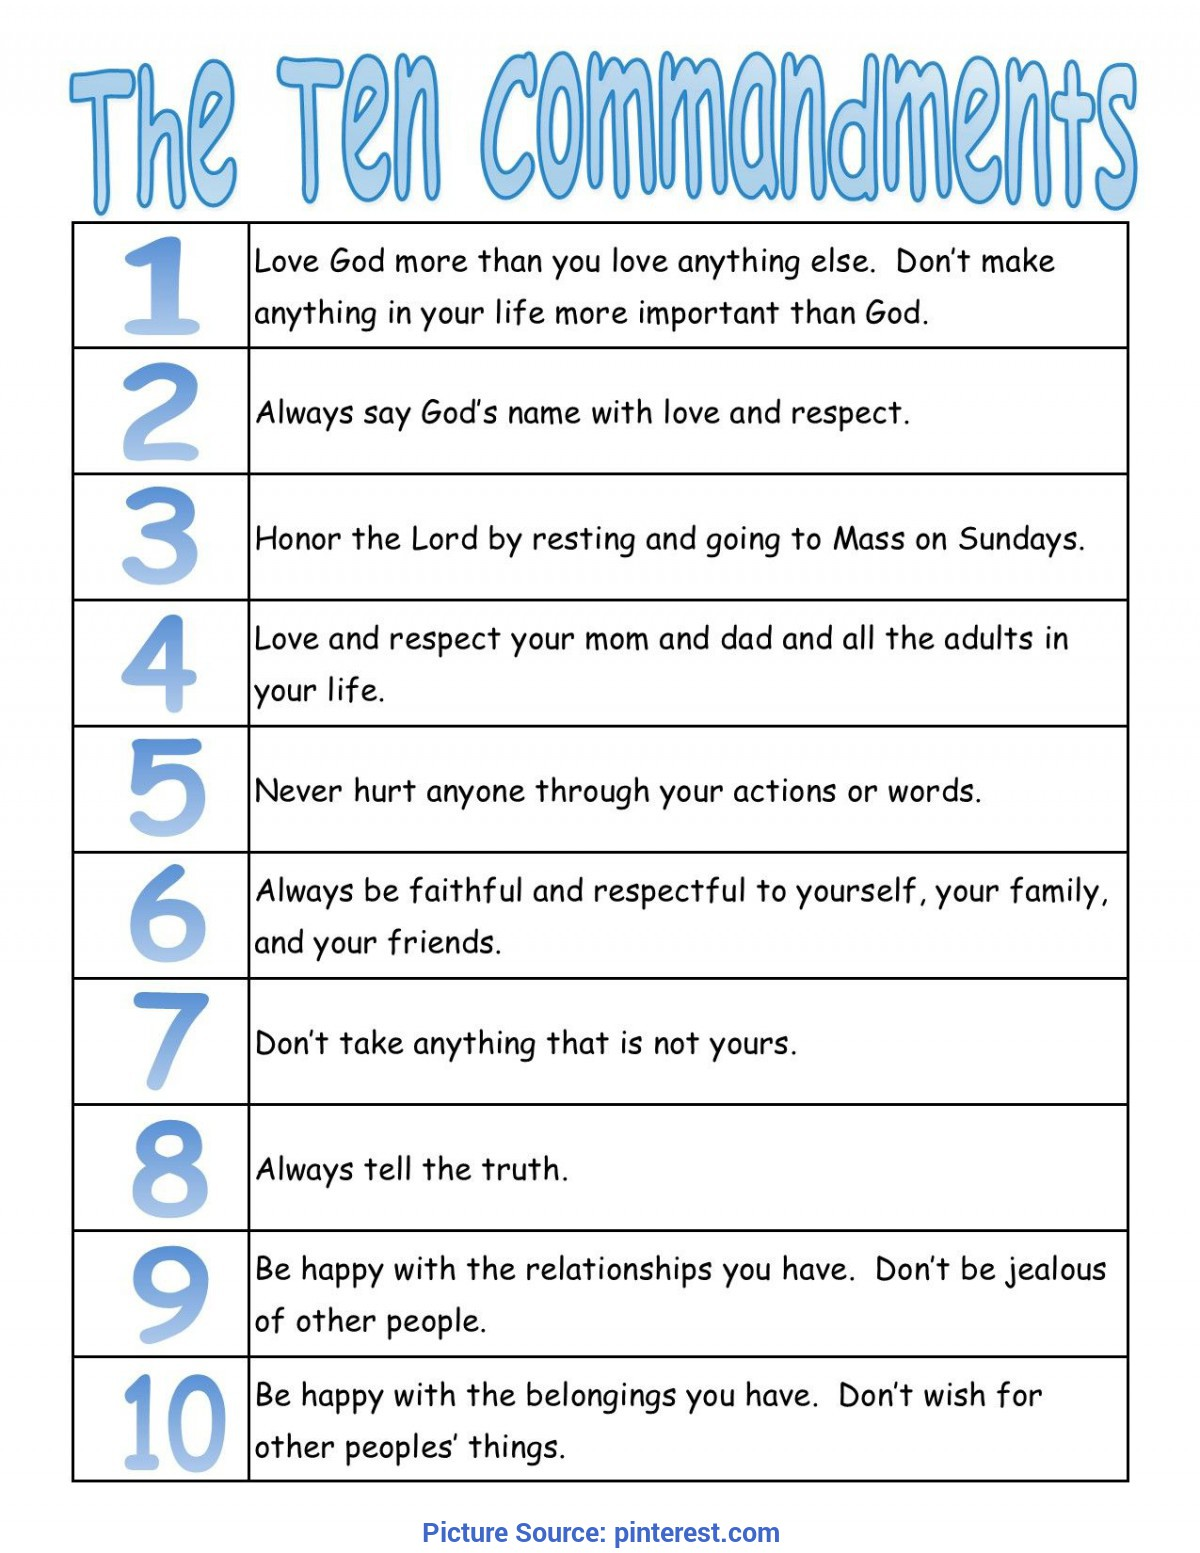 image about 10 Commandments Printable Worksheets identify Least complicated Preschool Lesson Applications For The 10 Commandments A Real